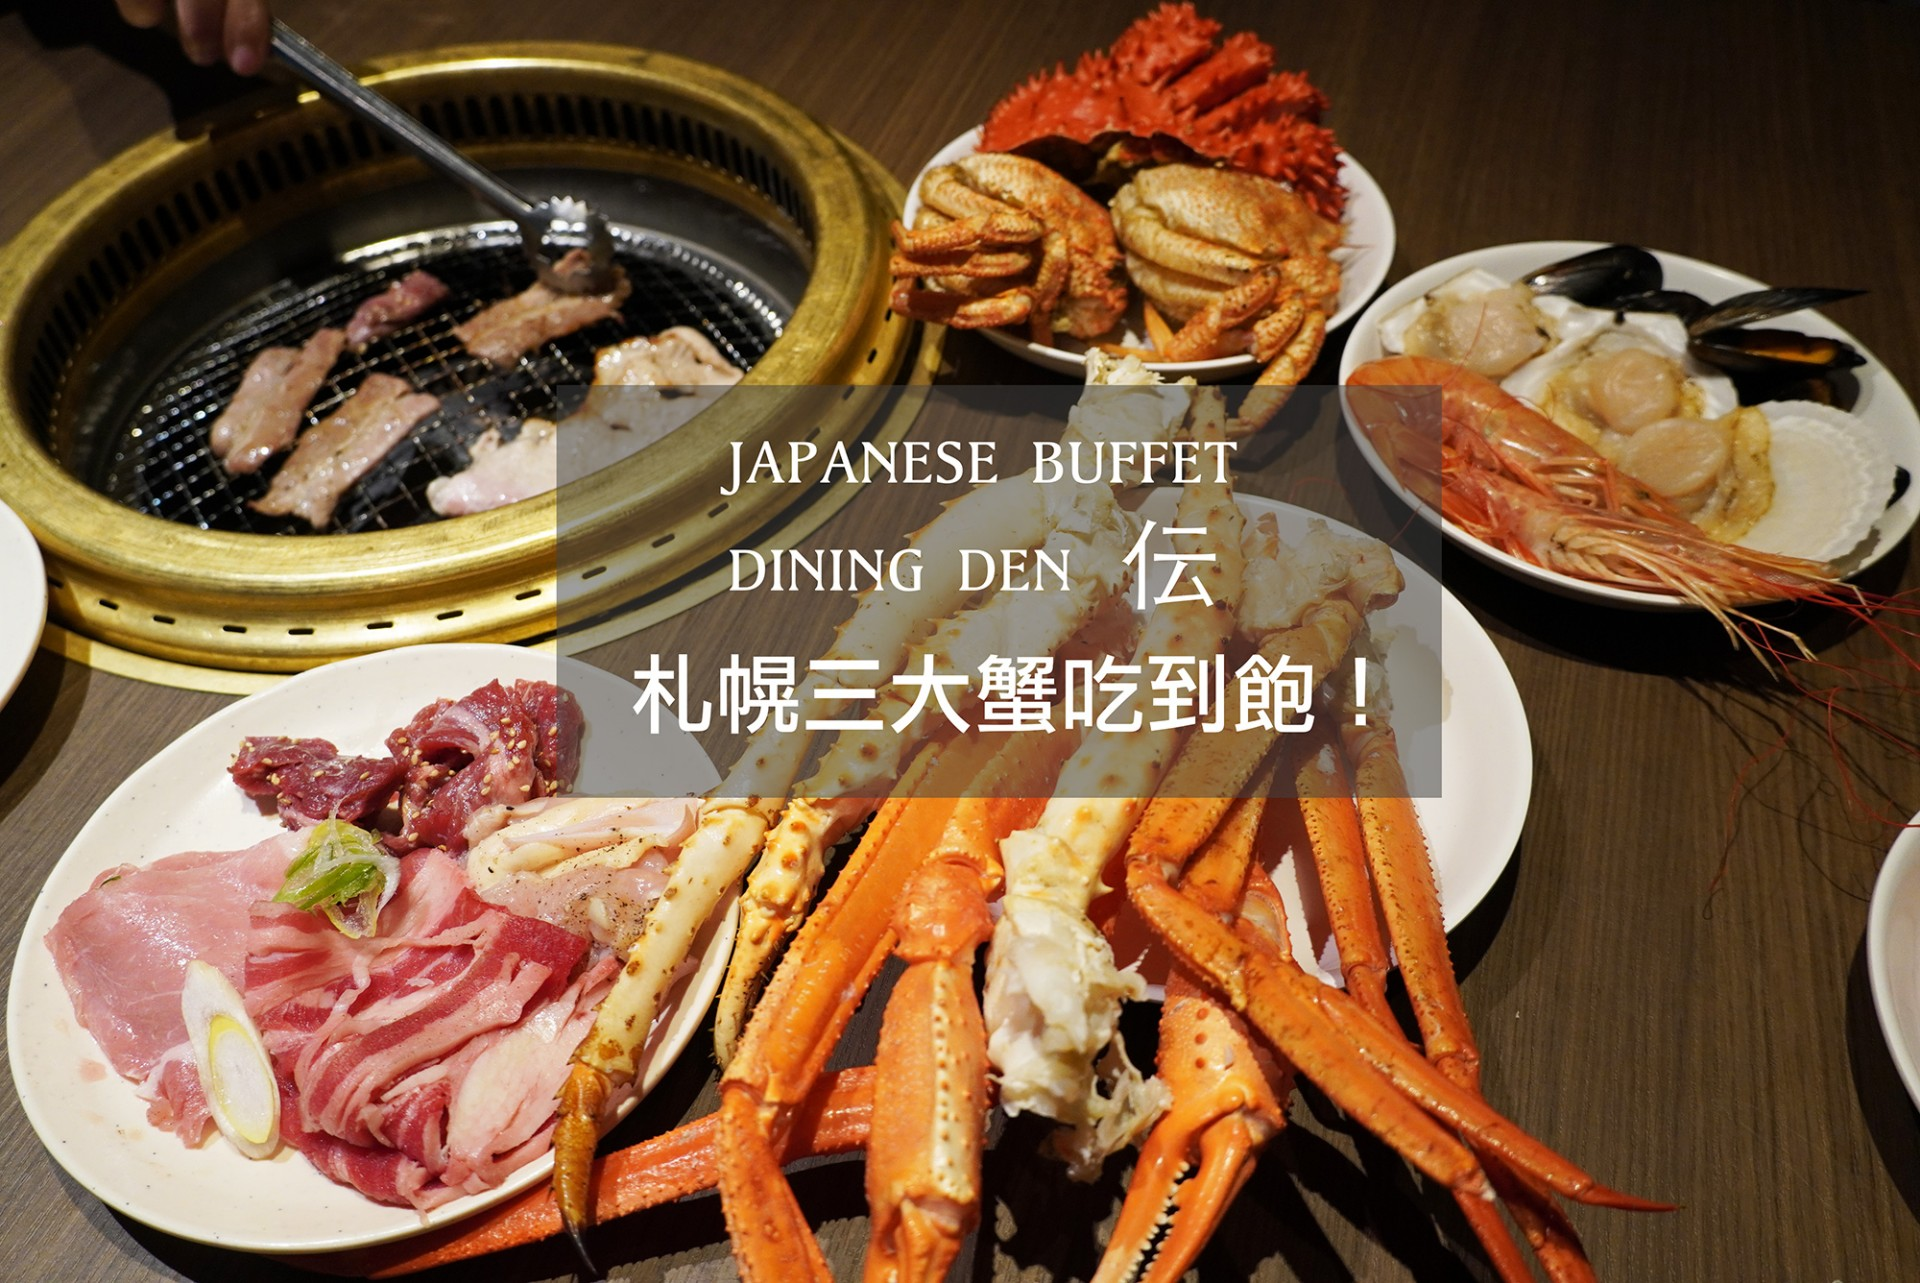 ☆【2020。北海道】札幌最有誠意3大蟹吃到飽!JAPANESE BUFFET DINING DEN伝 @凱的日本食尚日記